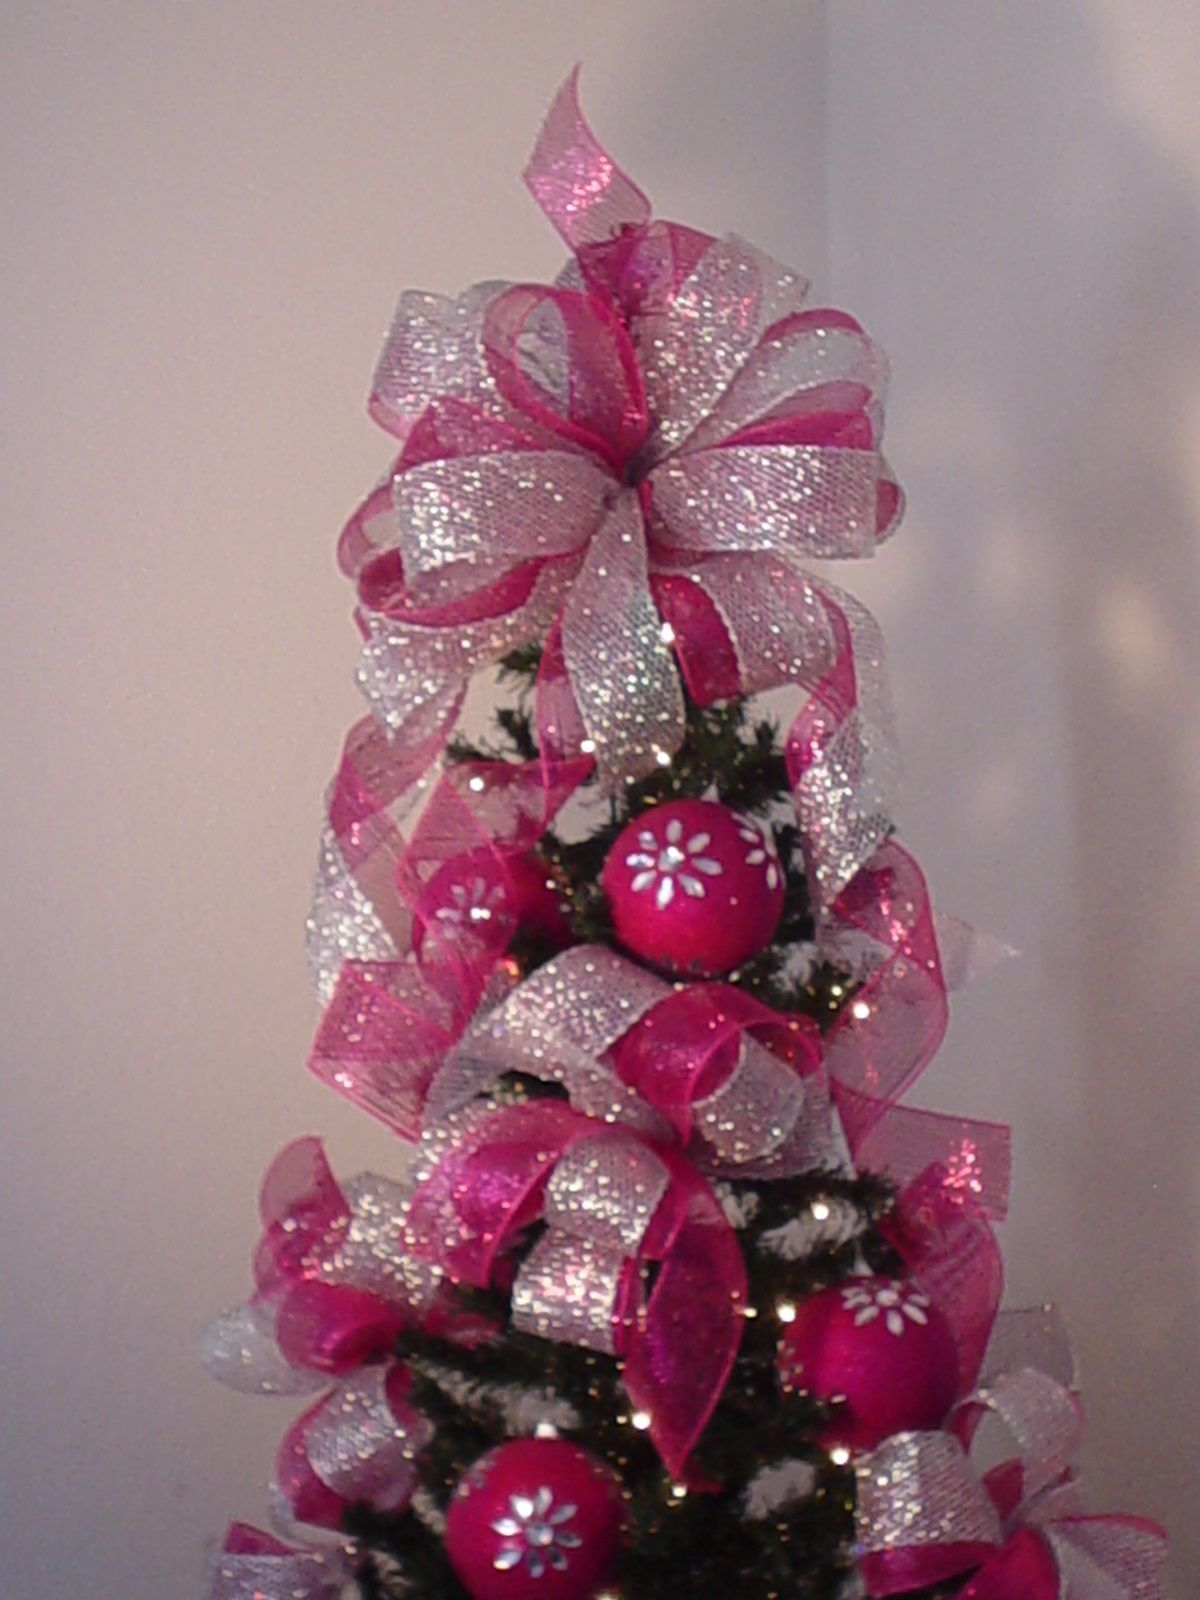 Coordinate Decorations Throughout Your House With Customized Bows For Christmas Christmas Wreaths Diy Pink Christmas Tree Decorations Diy Christmas Tree Topper